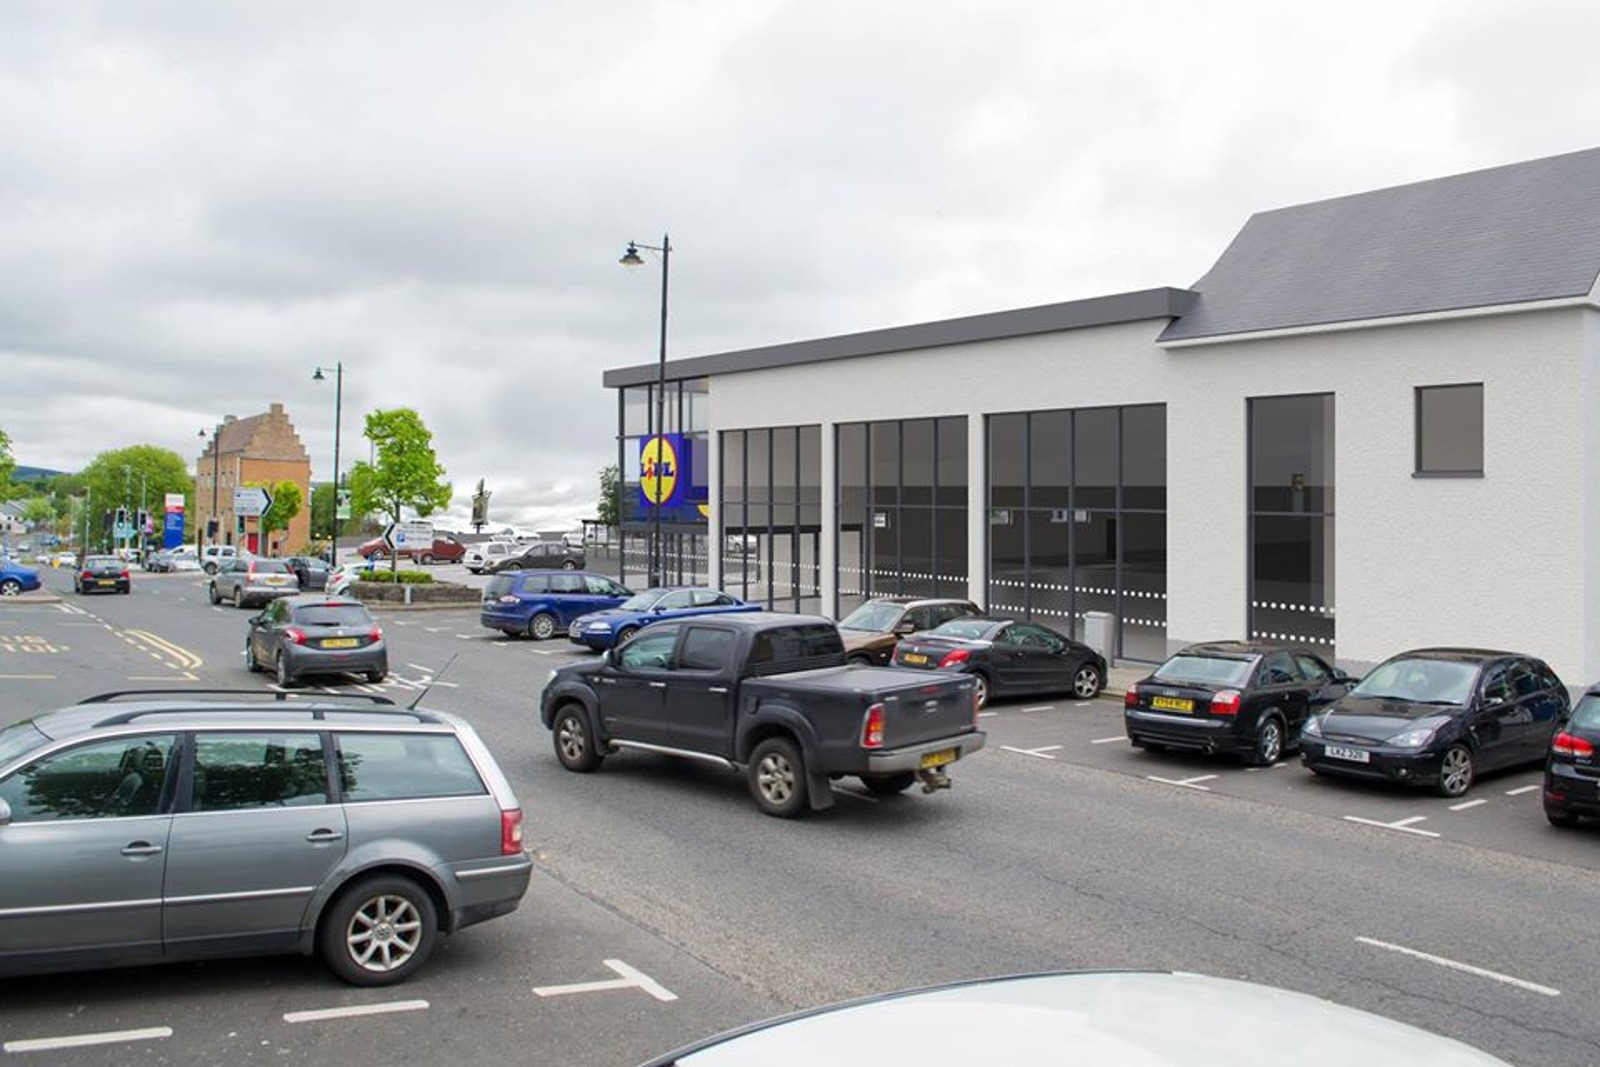 FORRME appointed as Main Contractor on 2 Lidl schemes